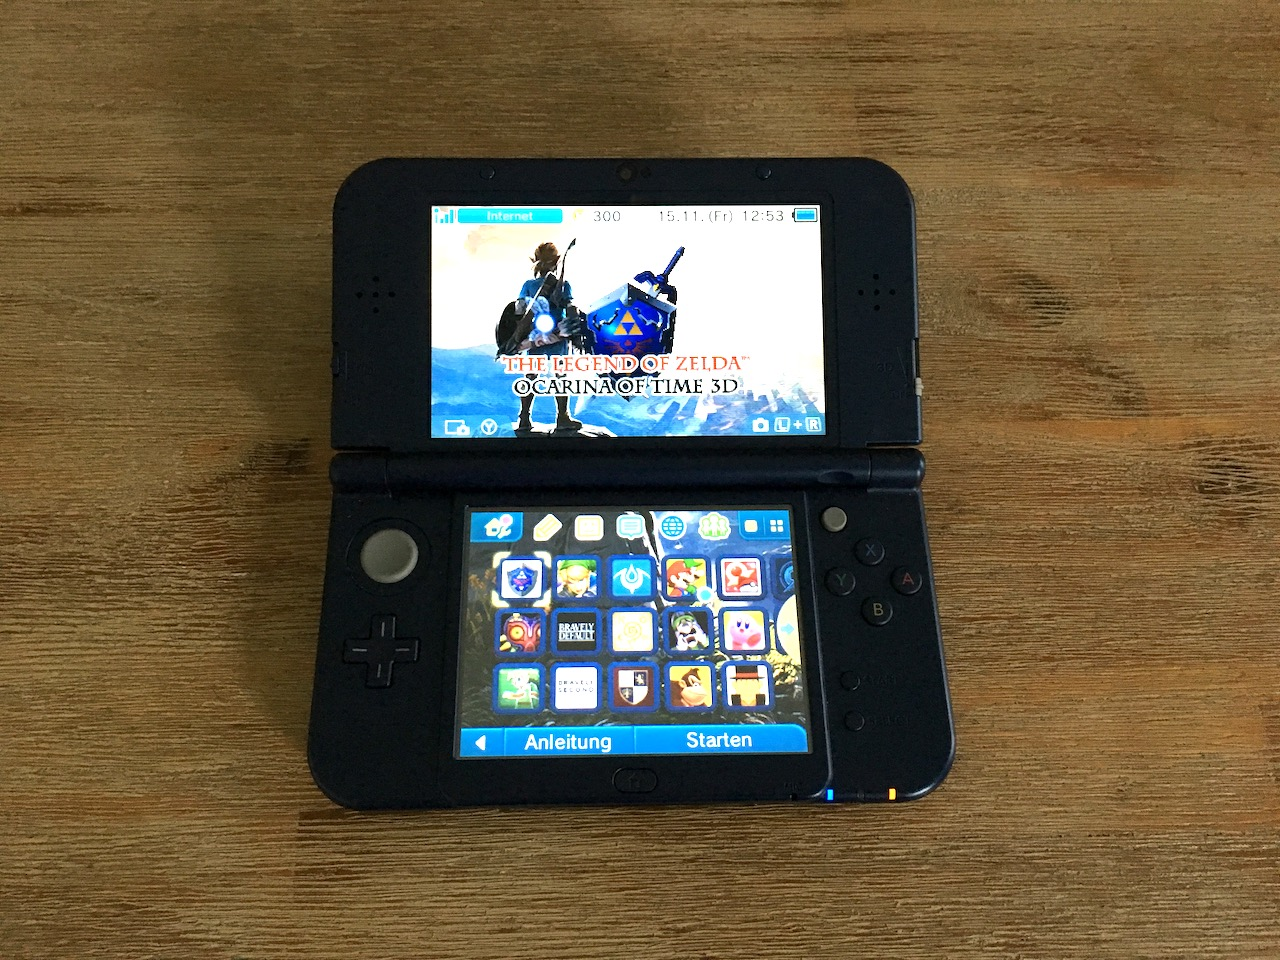 A 3DS showing the main menu